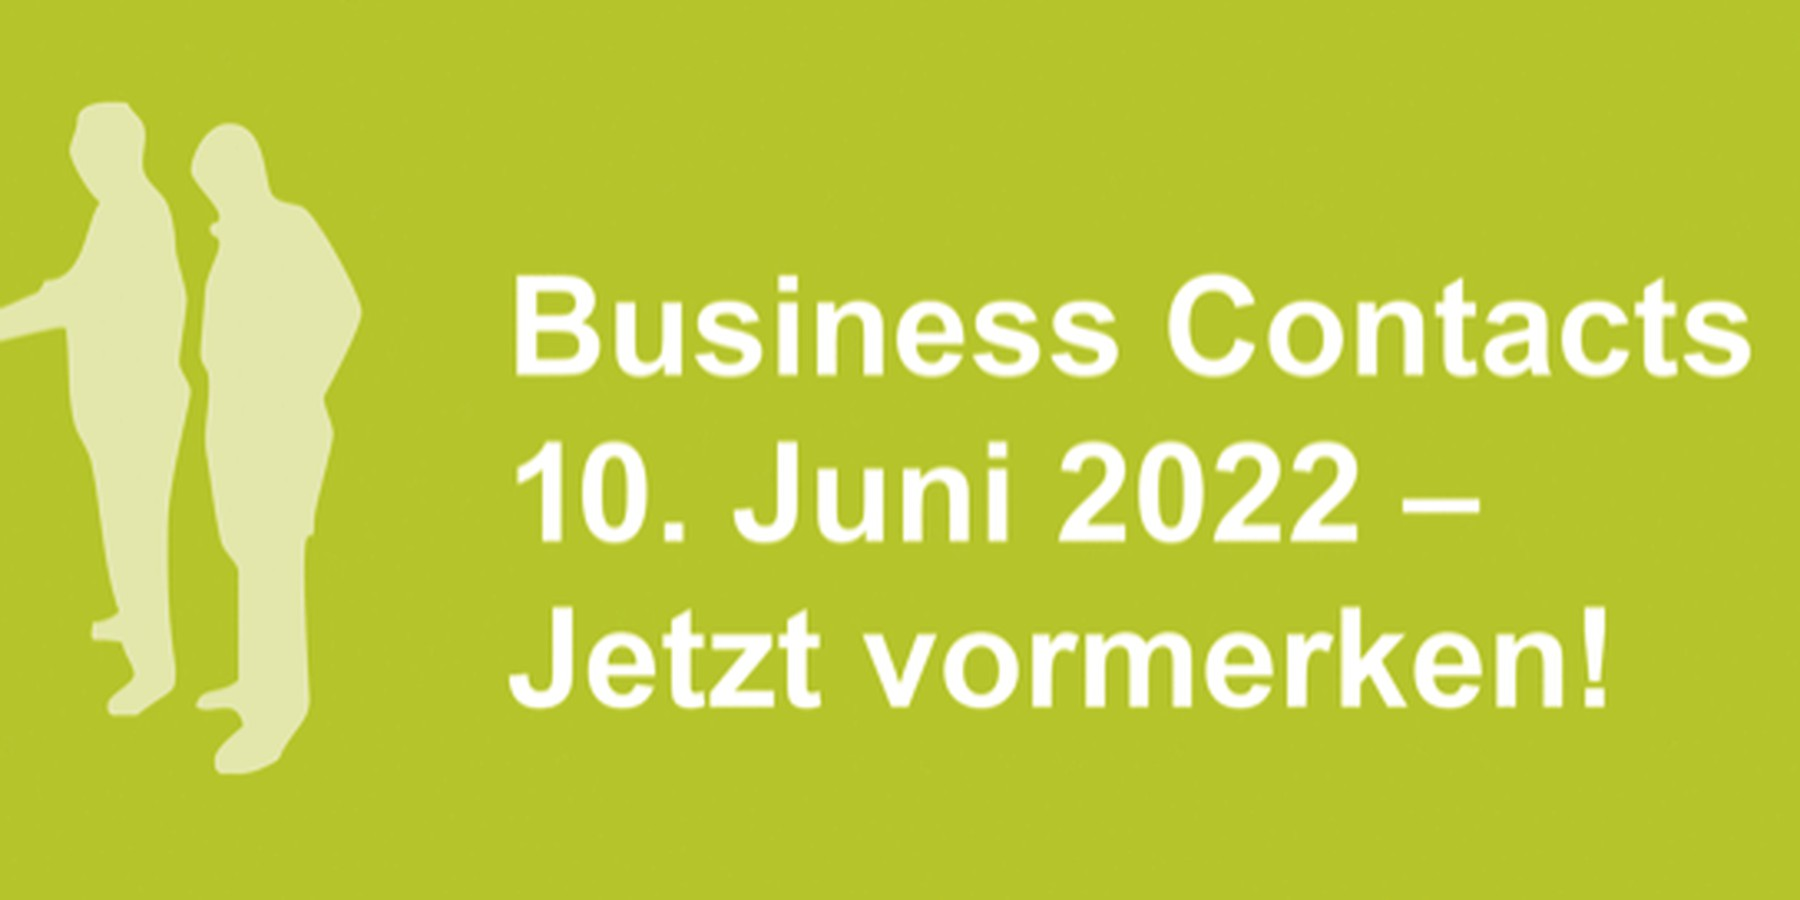 Business Contacts - Titelbild